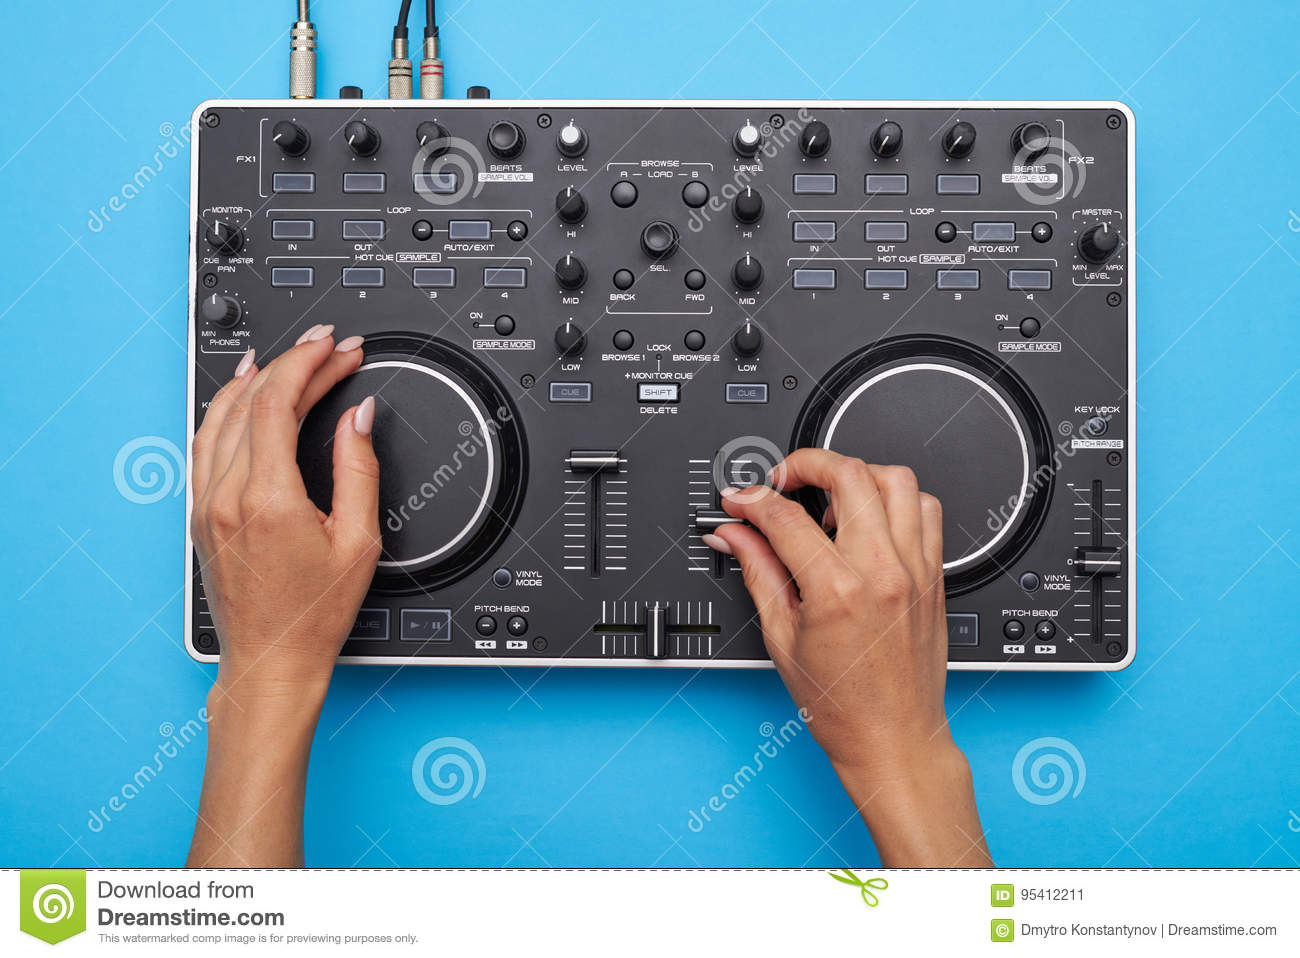 Female hands playing DJ mixer on blue background